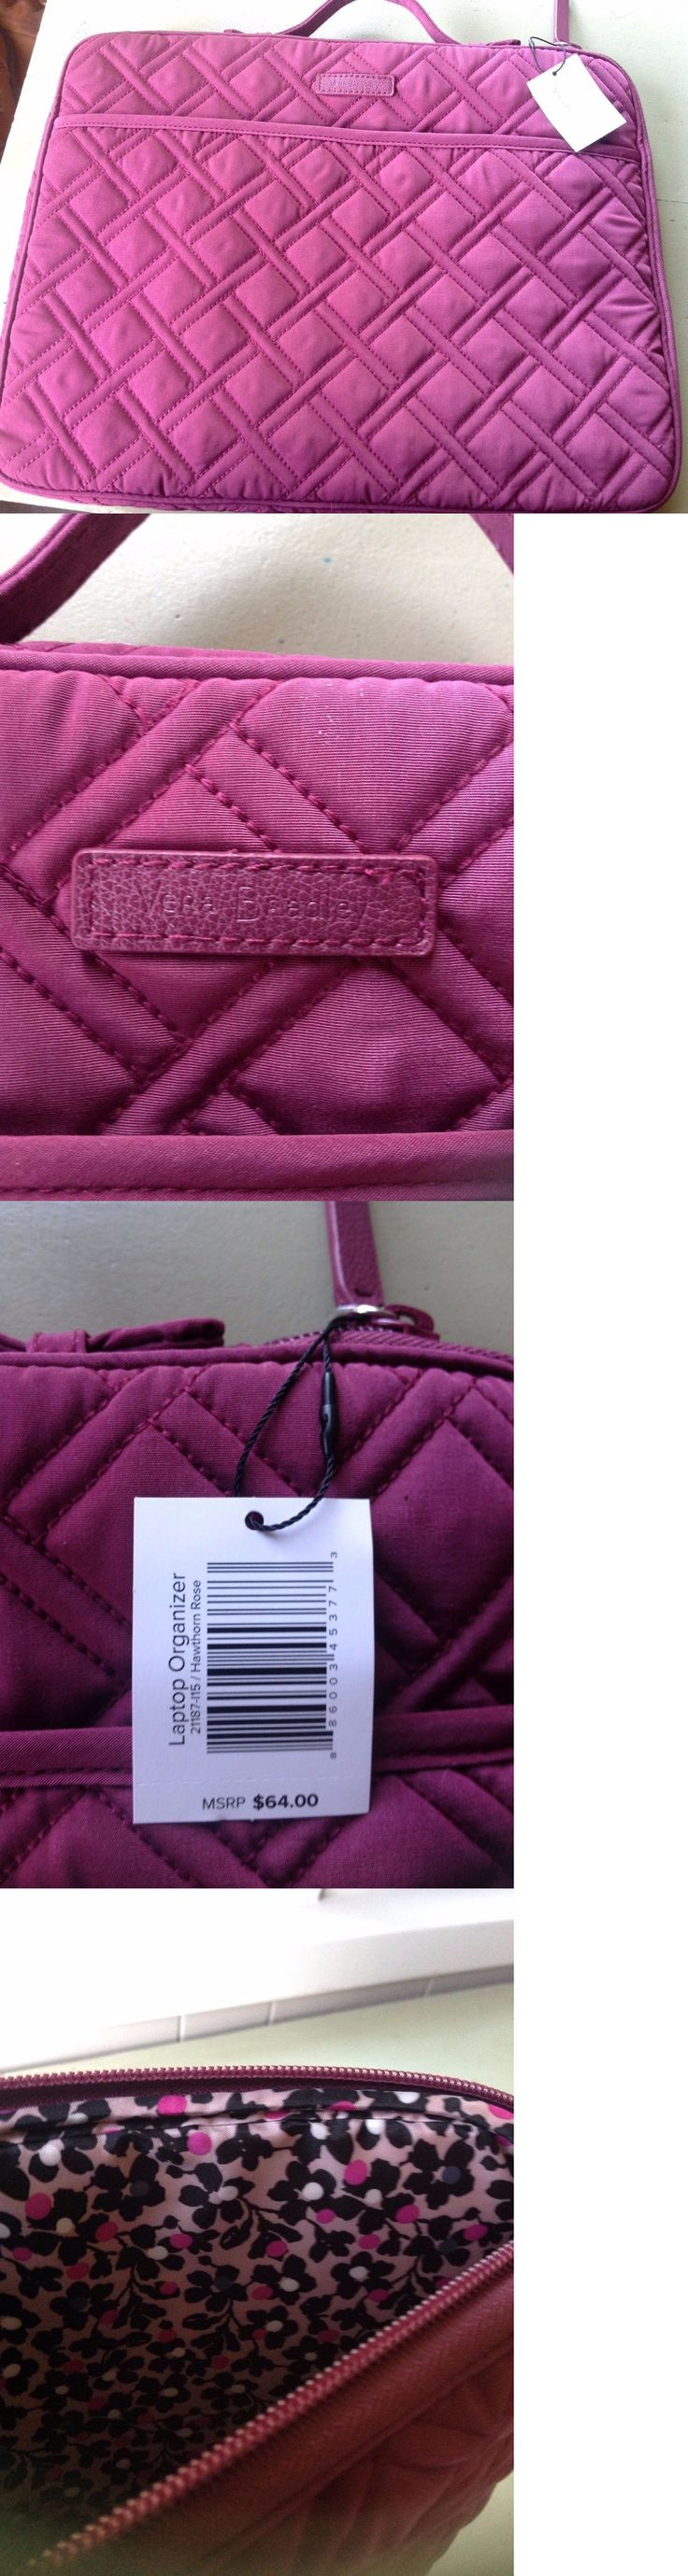 Briefcases and Laptop Bags 169293: Nwt Vera Bradley Laptop Organizer In Hawthorne Rose Microfiber -> BUY IT NOW ONLY: $45 on eBay!